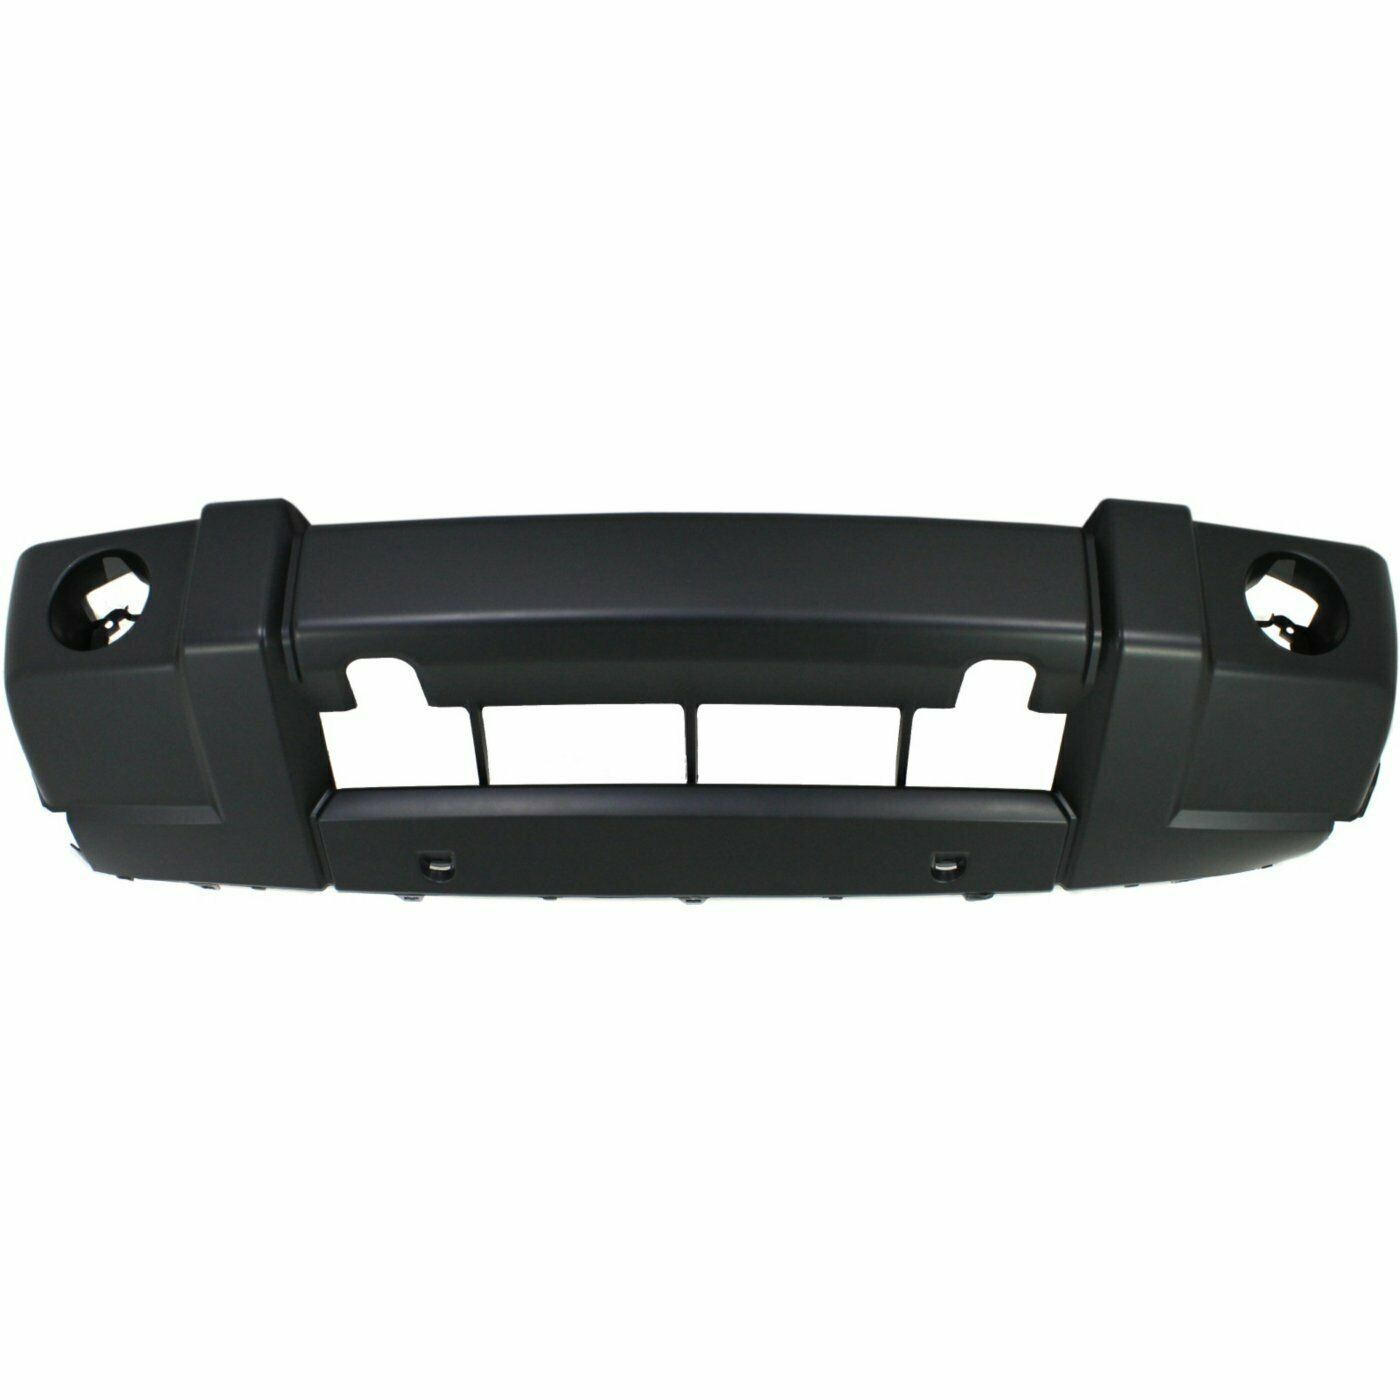 2006-2010 Jeep Commander (W/O Chrome Trim Hole) Front Bumper